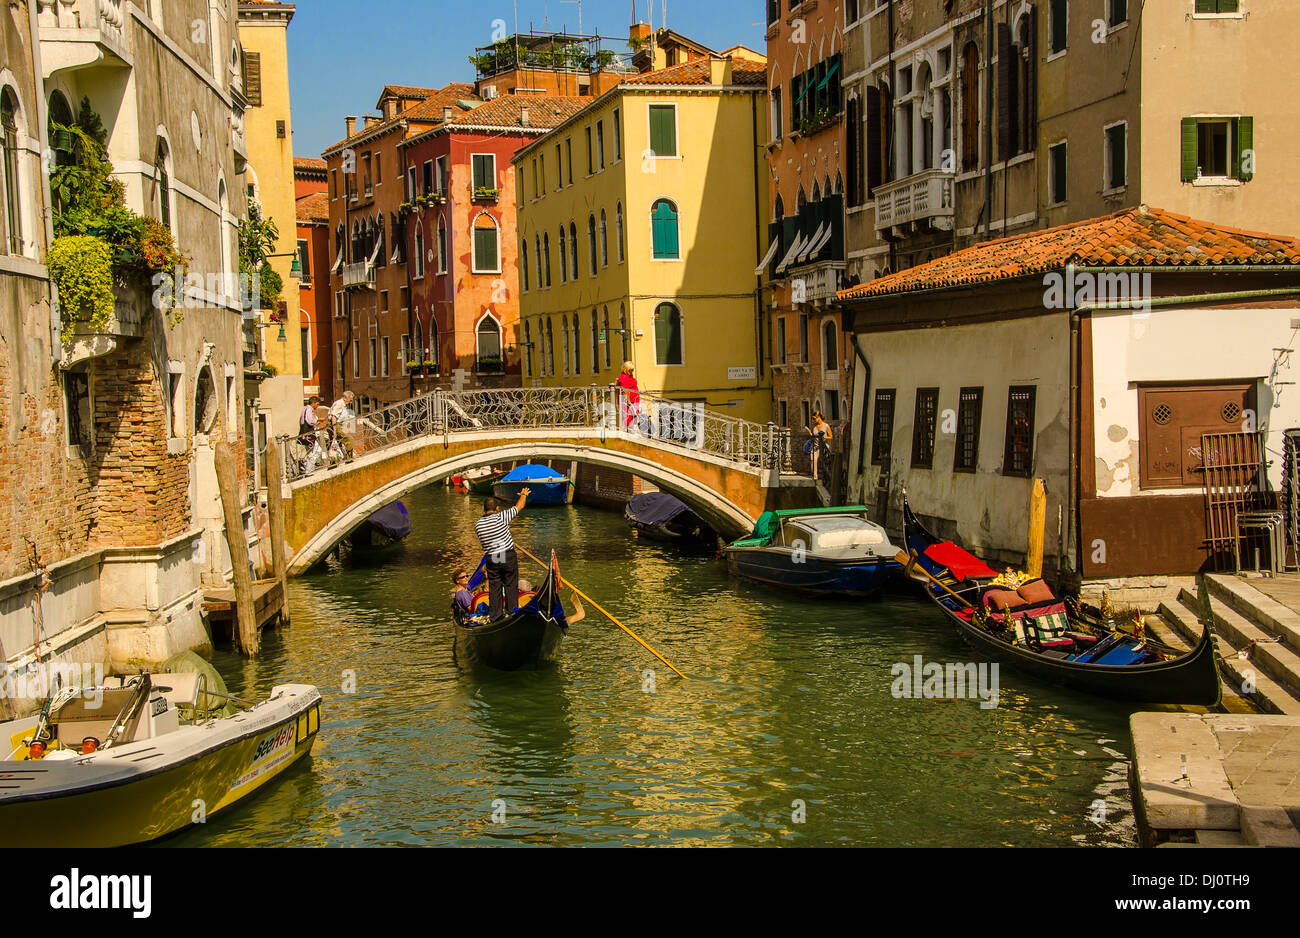 Gondolier taking passengers for an informative gondola ride in Venice, Italy. - Stock Image